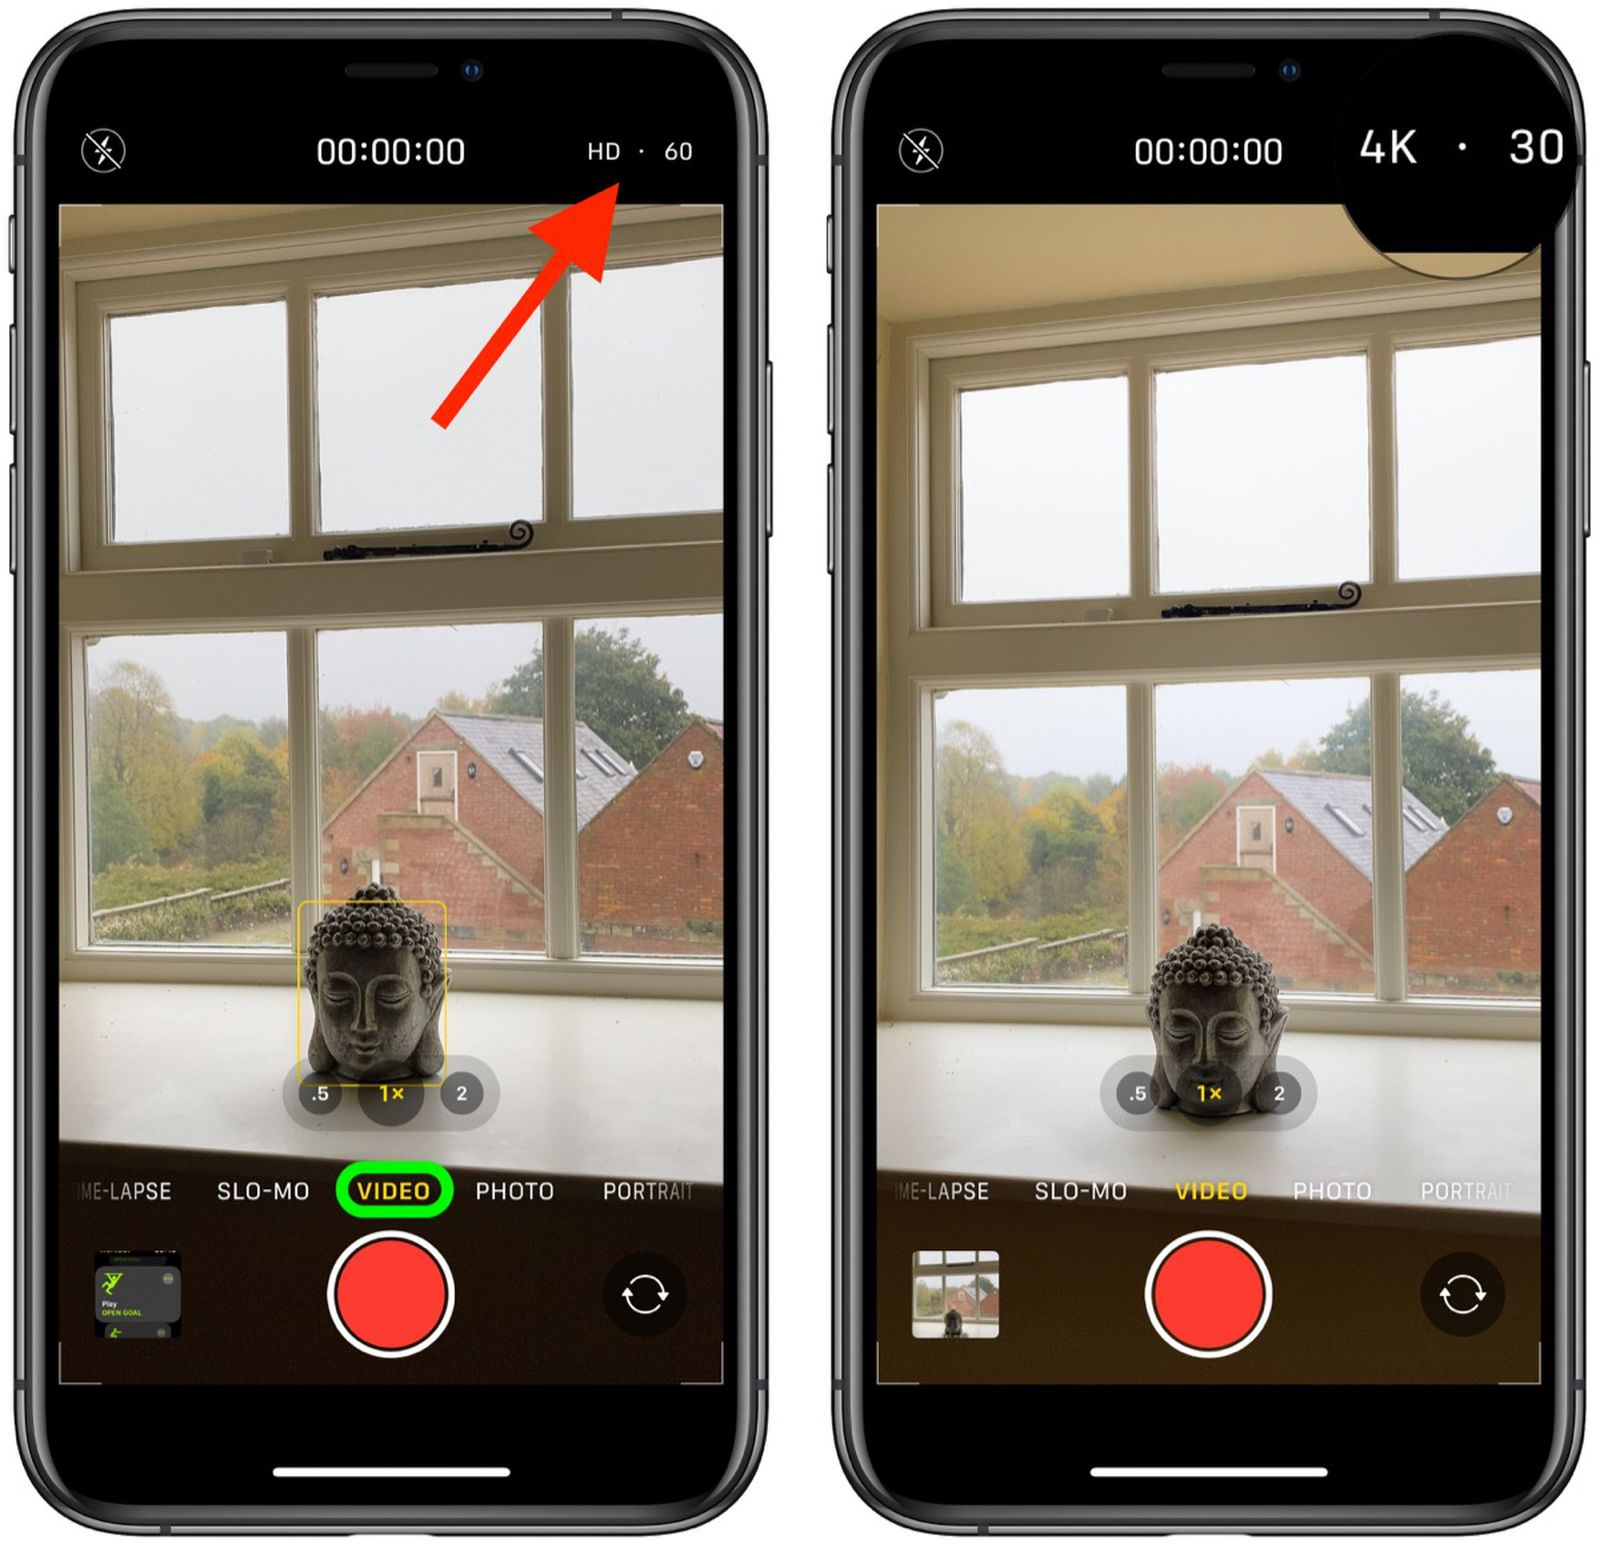 Ios 14 How To Change Video Quality In The Camera App Macrumors